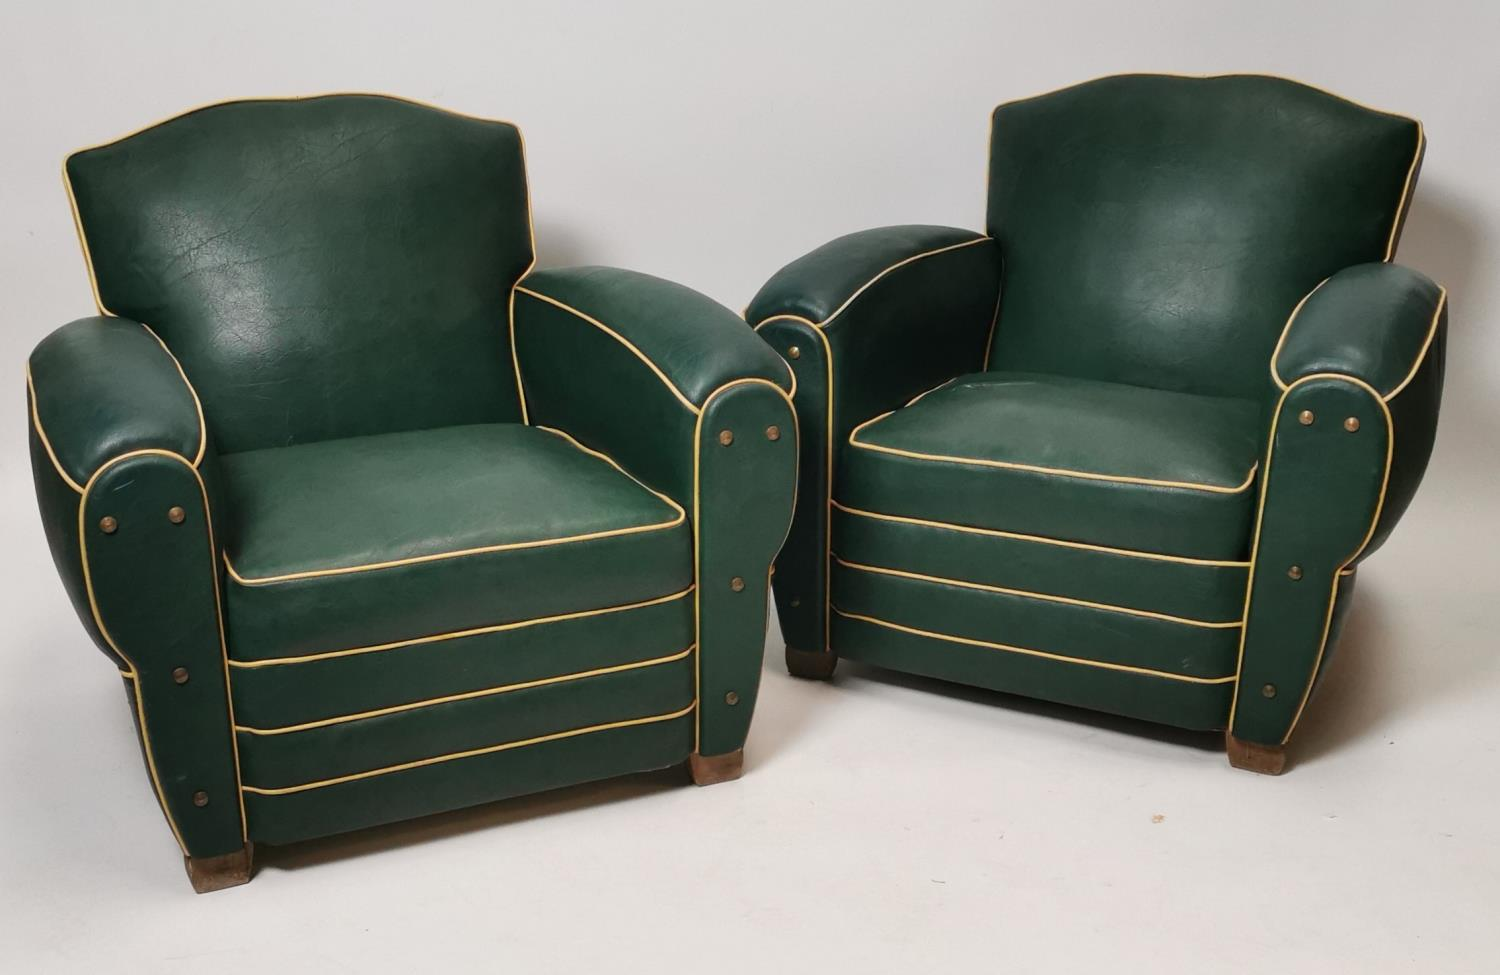 Lot 693 - Pair of Art Deco club chairs.